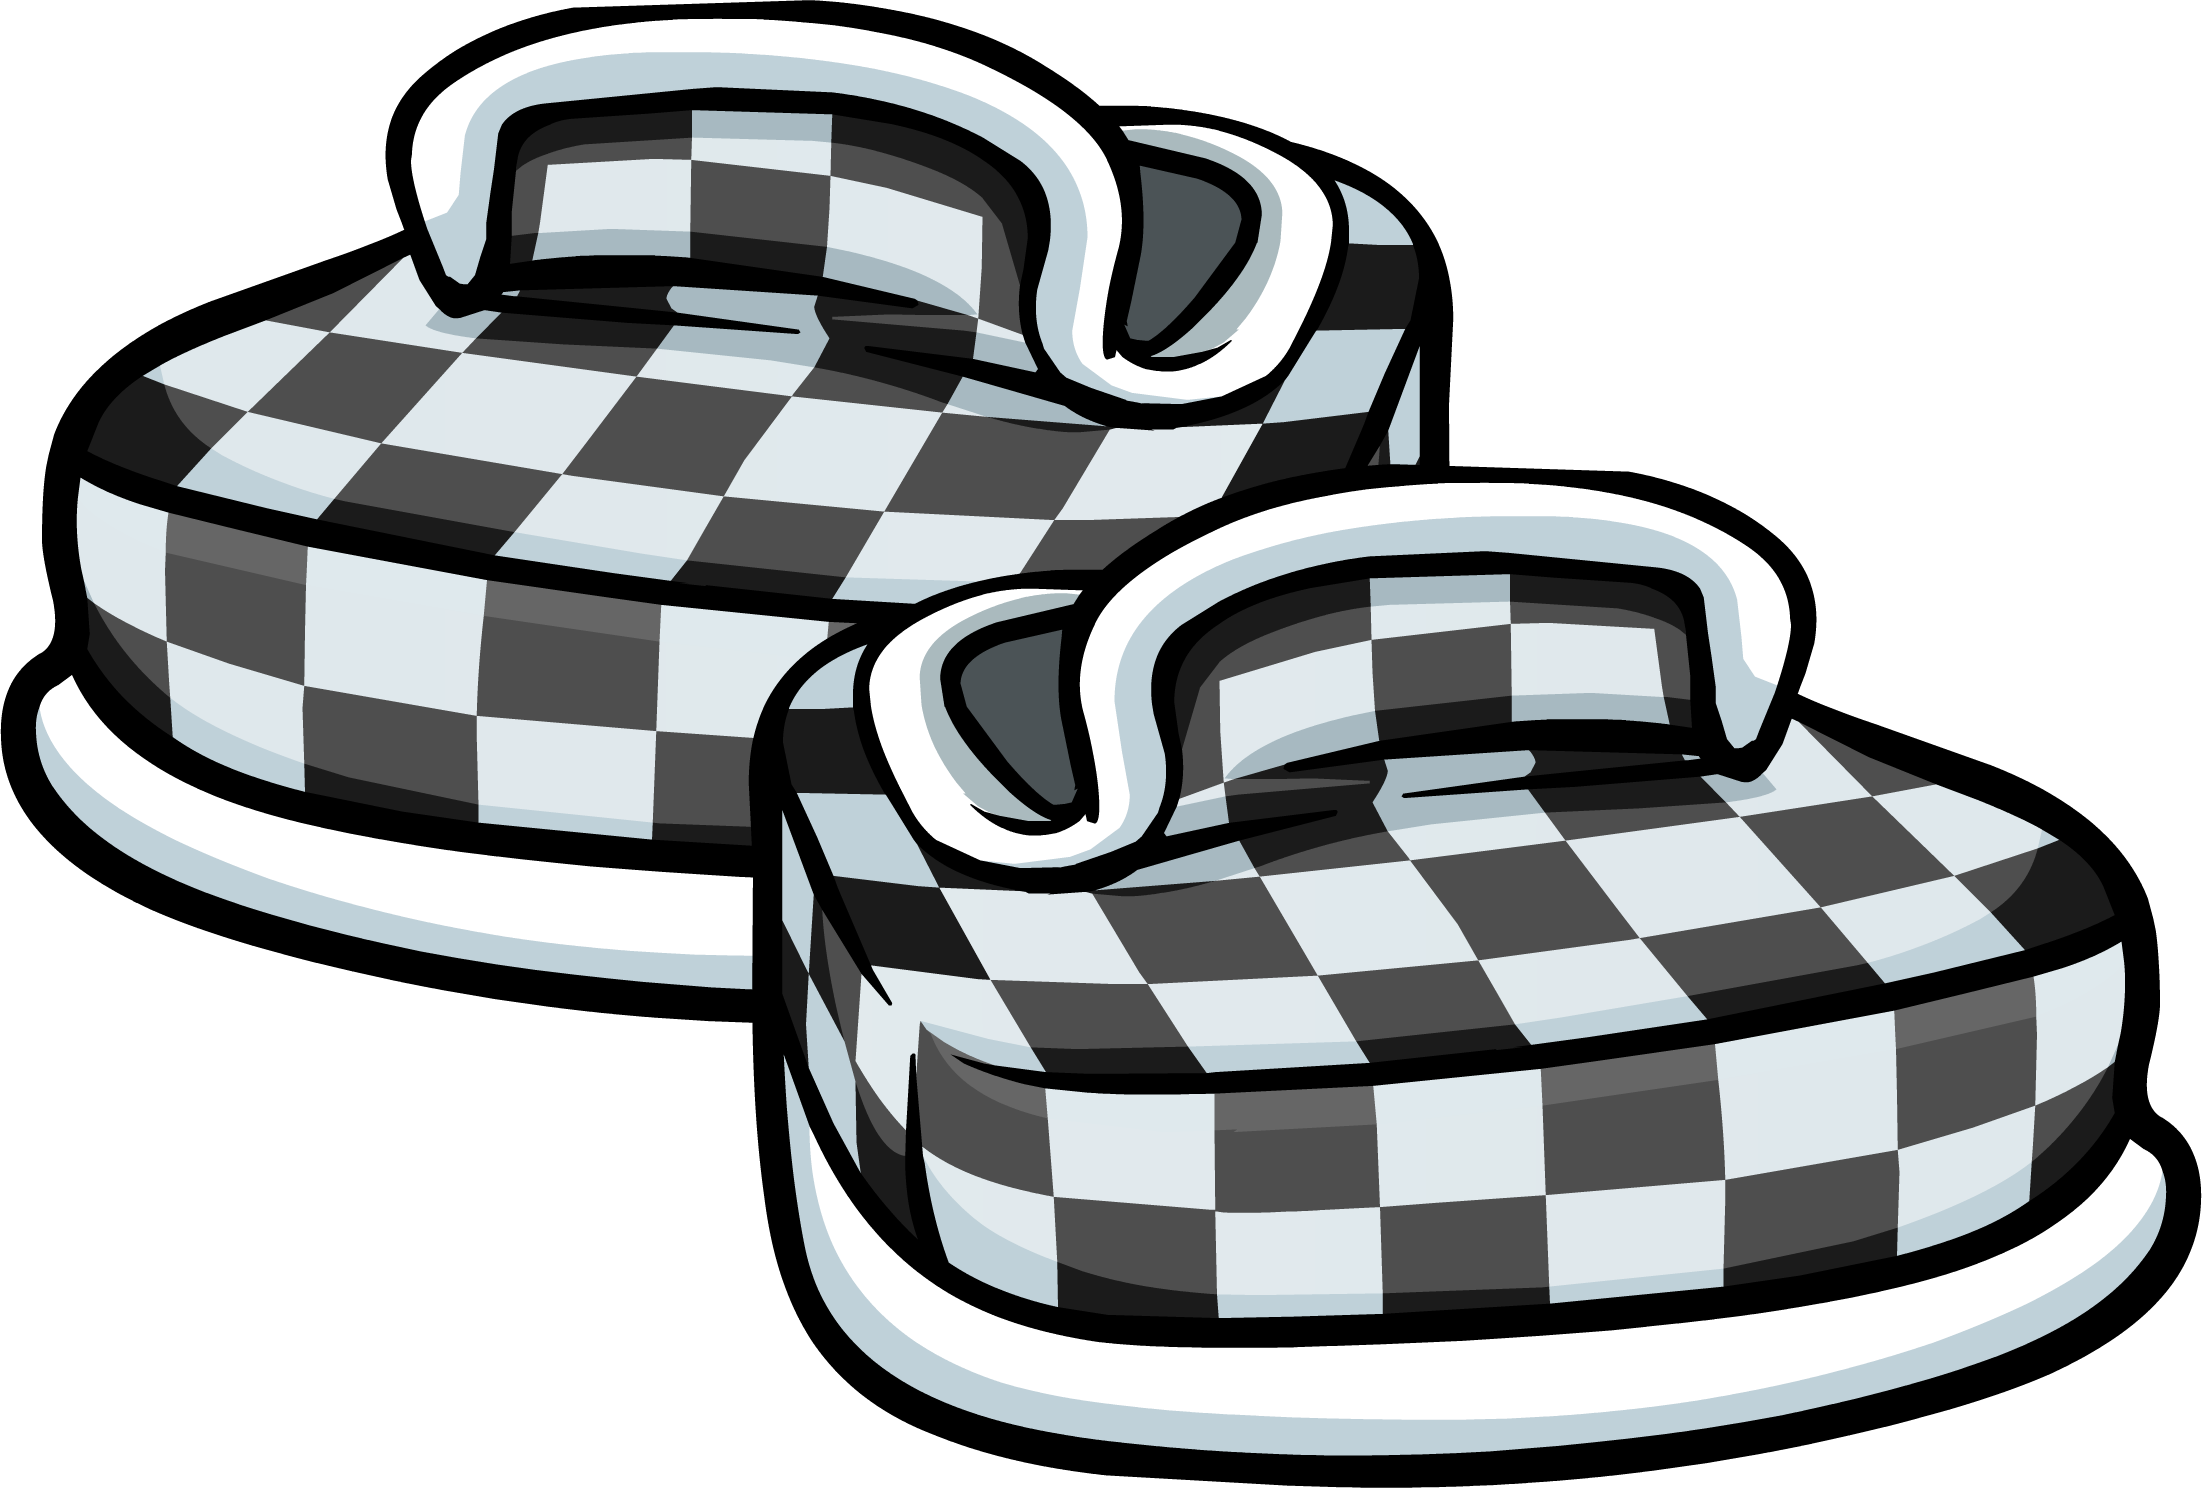 Checkered clipart checkered floor. Black shoes club penguin